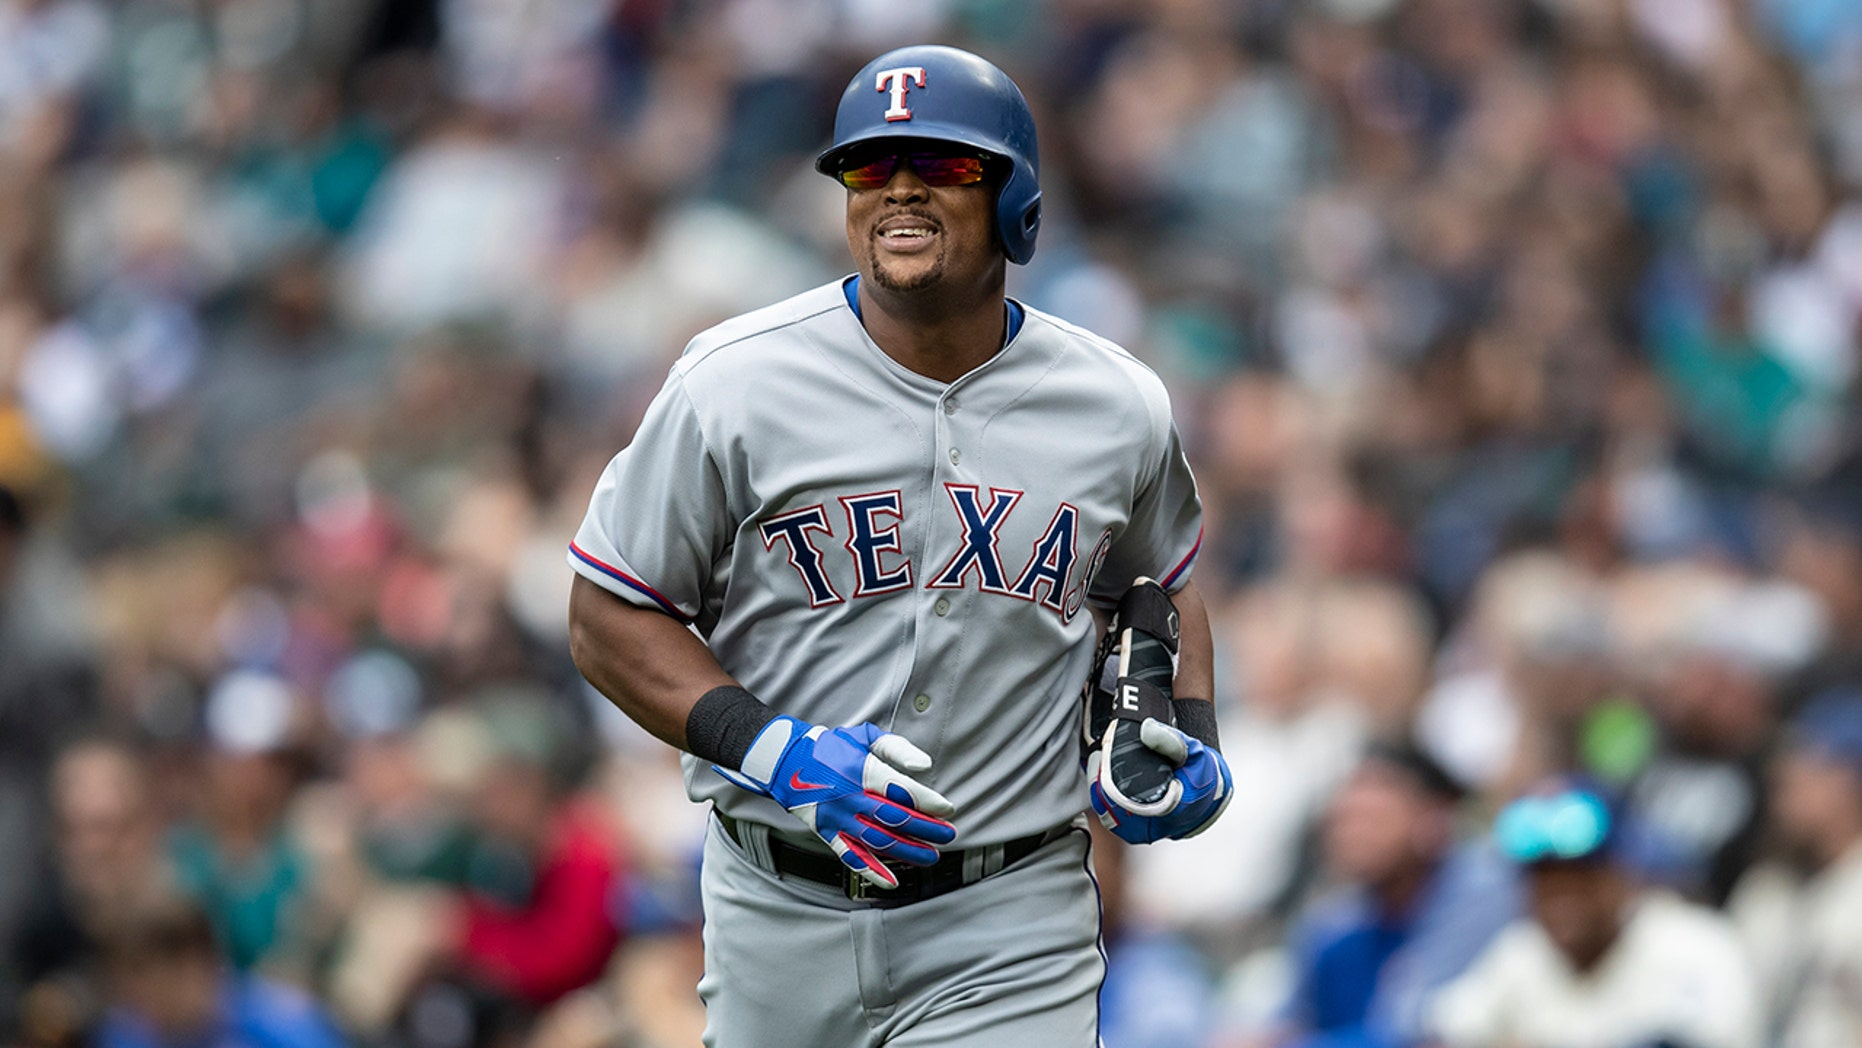 Adrian Beltre announced his retirement Tuesday after 21 seasons in the majors.